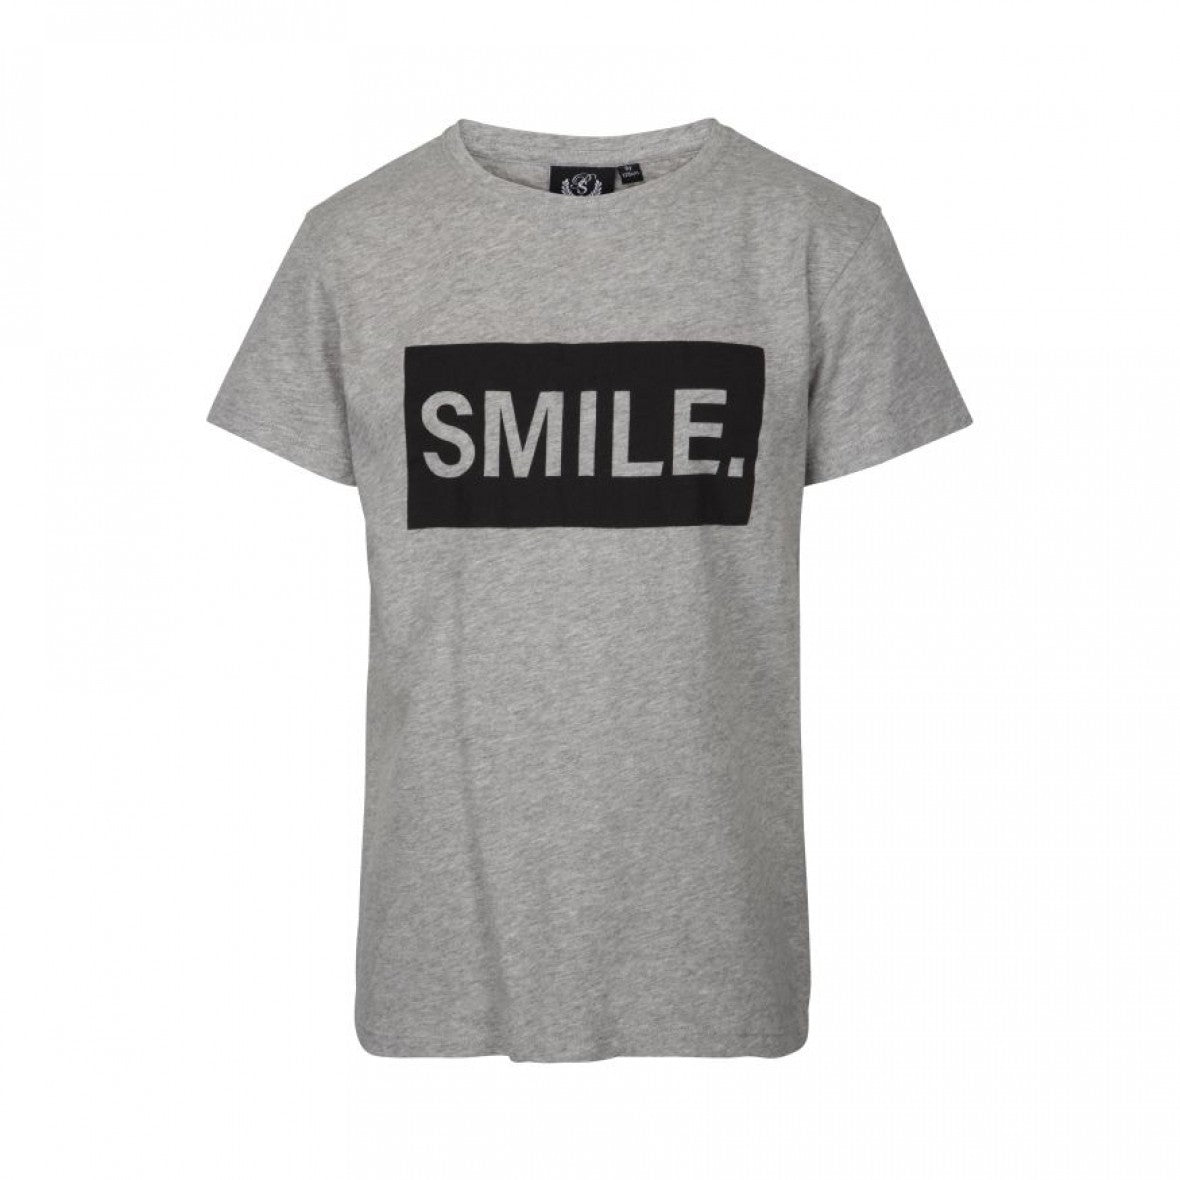 Petit by Sofie Schnoor - T-shirt, Smile - Grey Melange